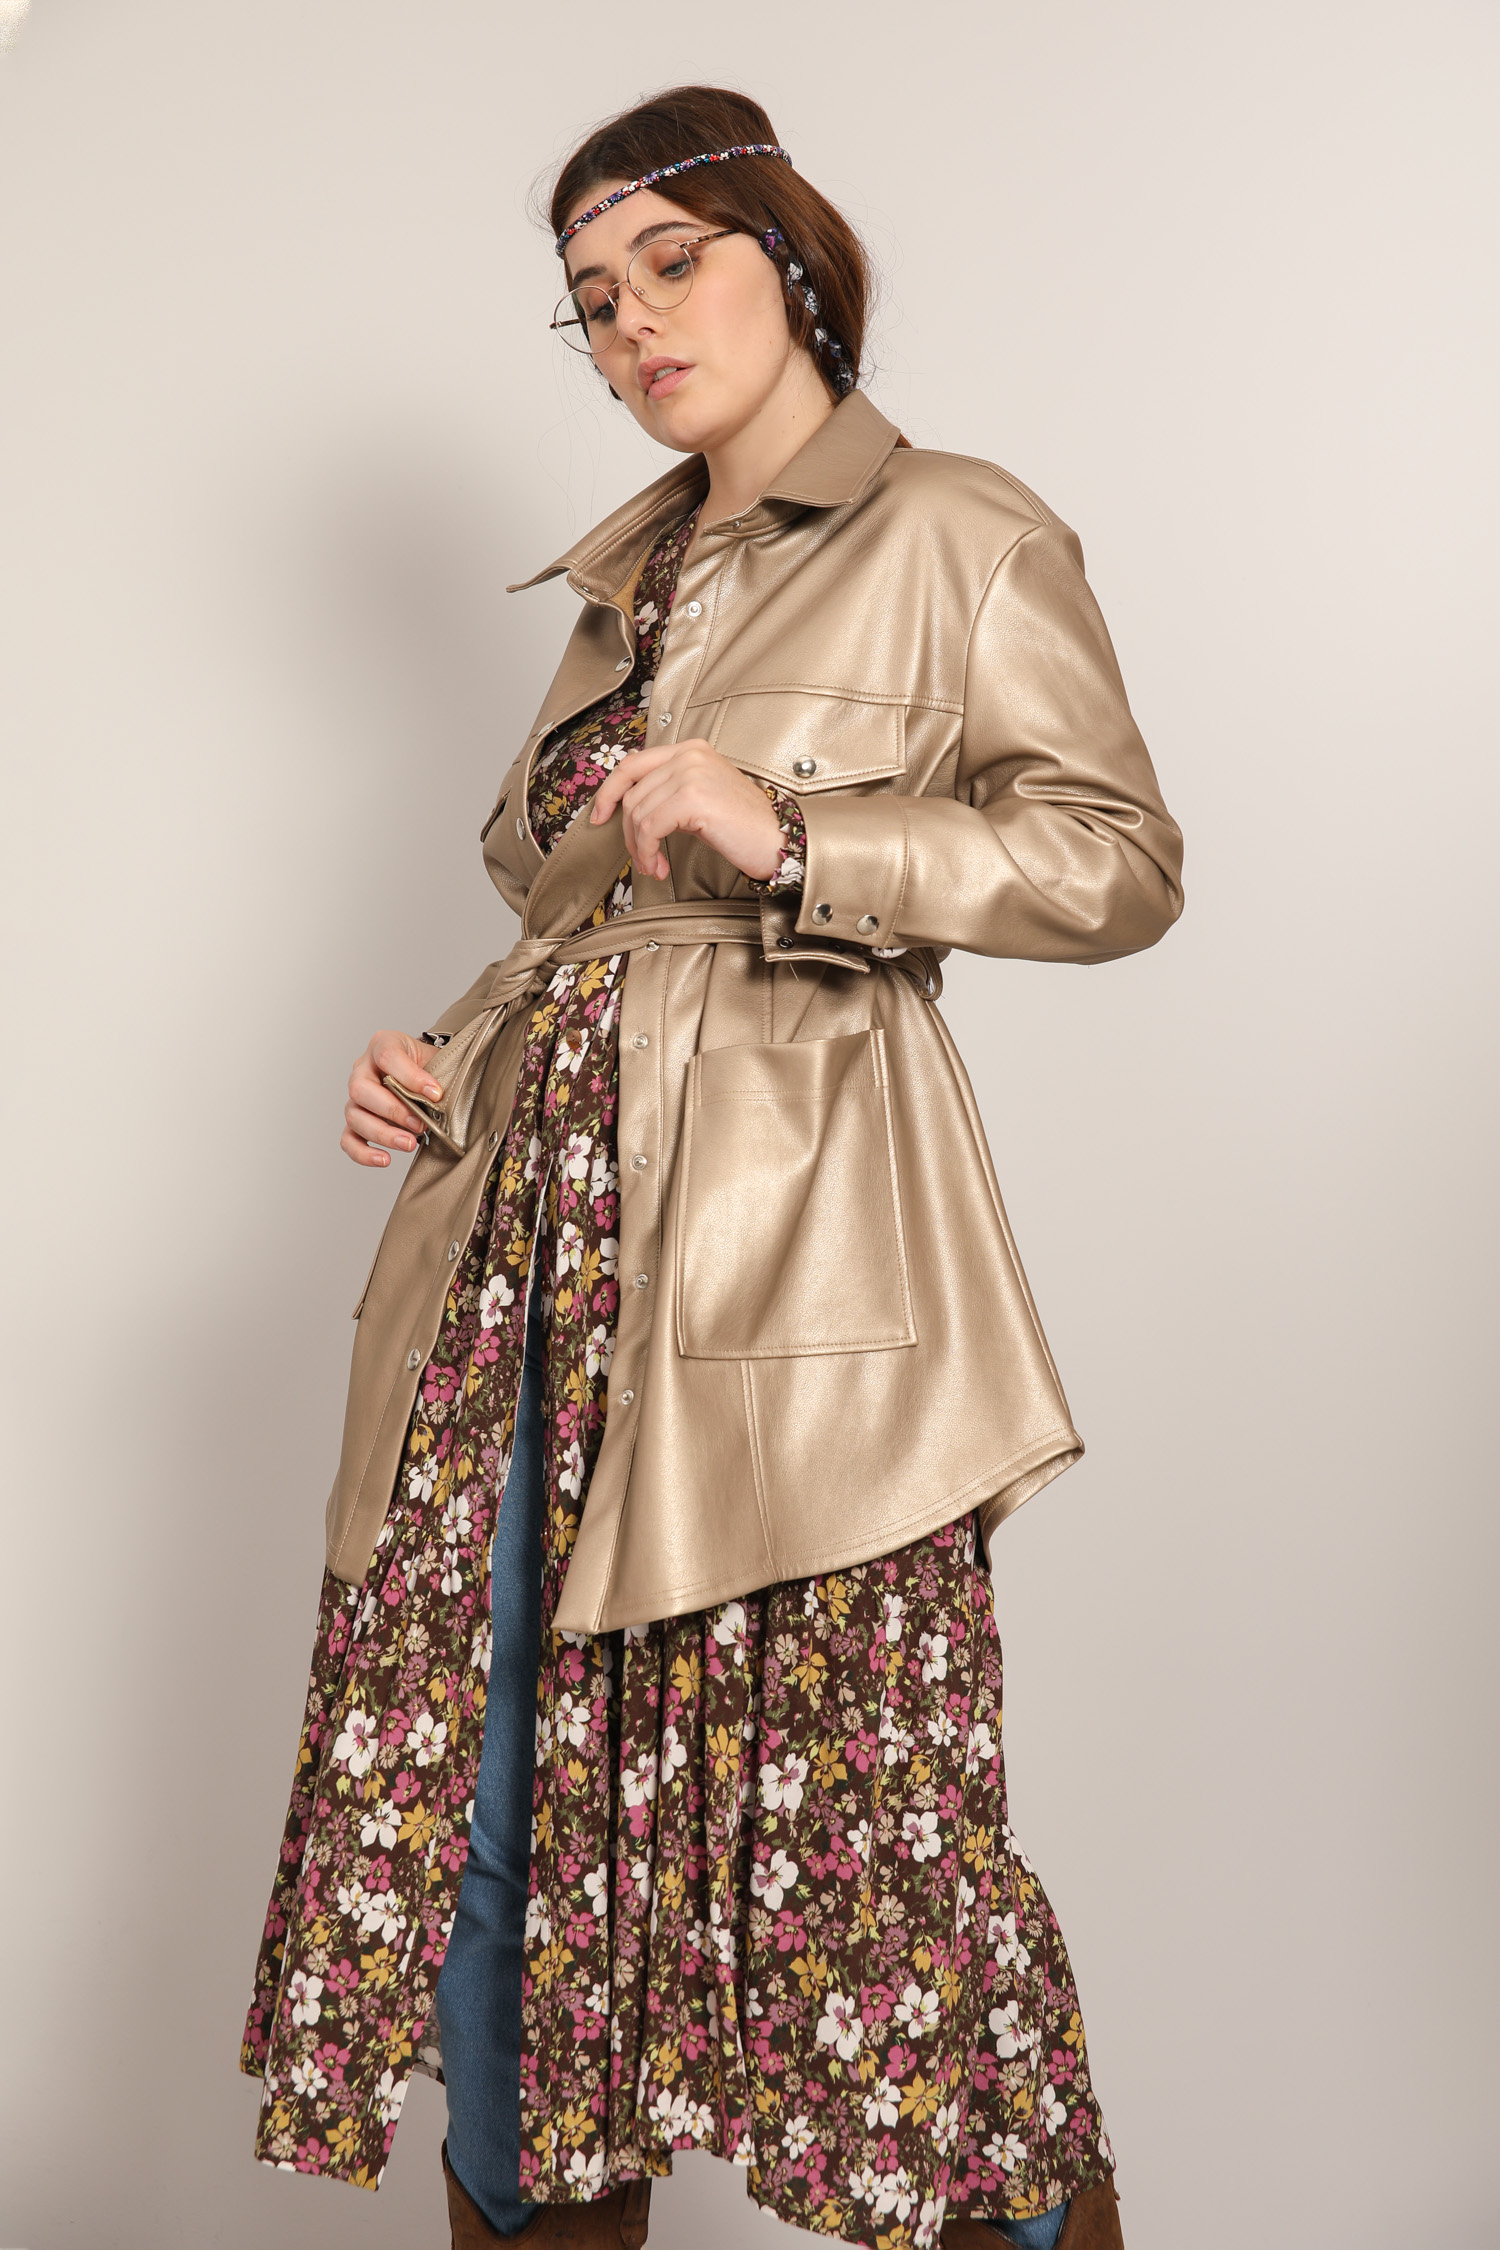 Saharan style jacket in vegan leather (Delivery November 15/20)